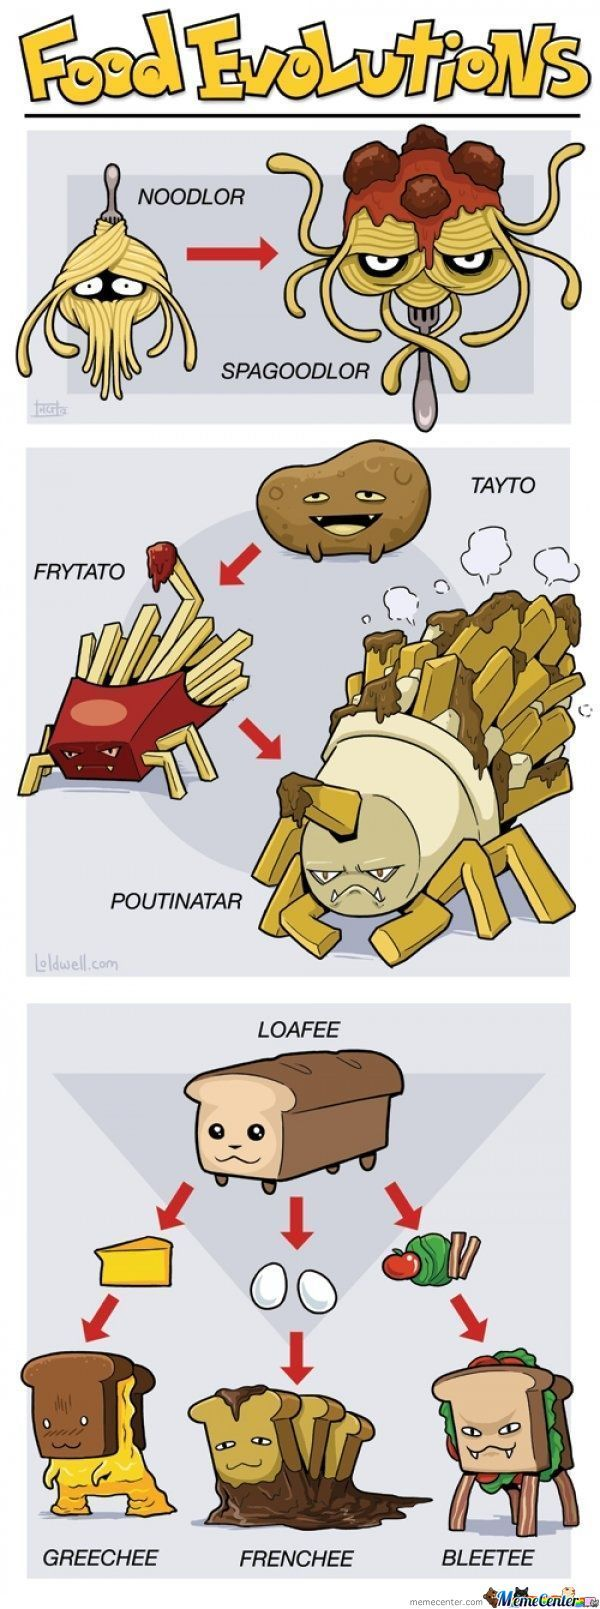 Food Evolutions.